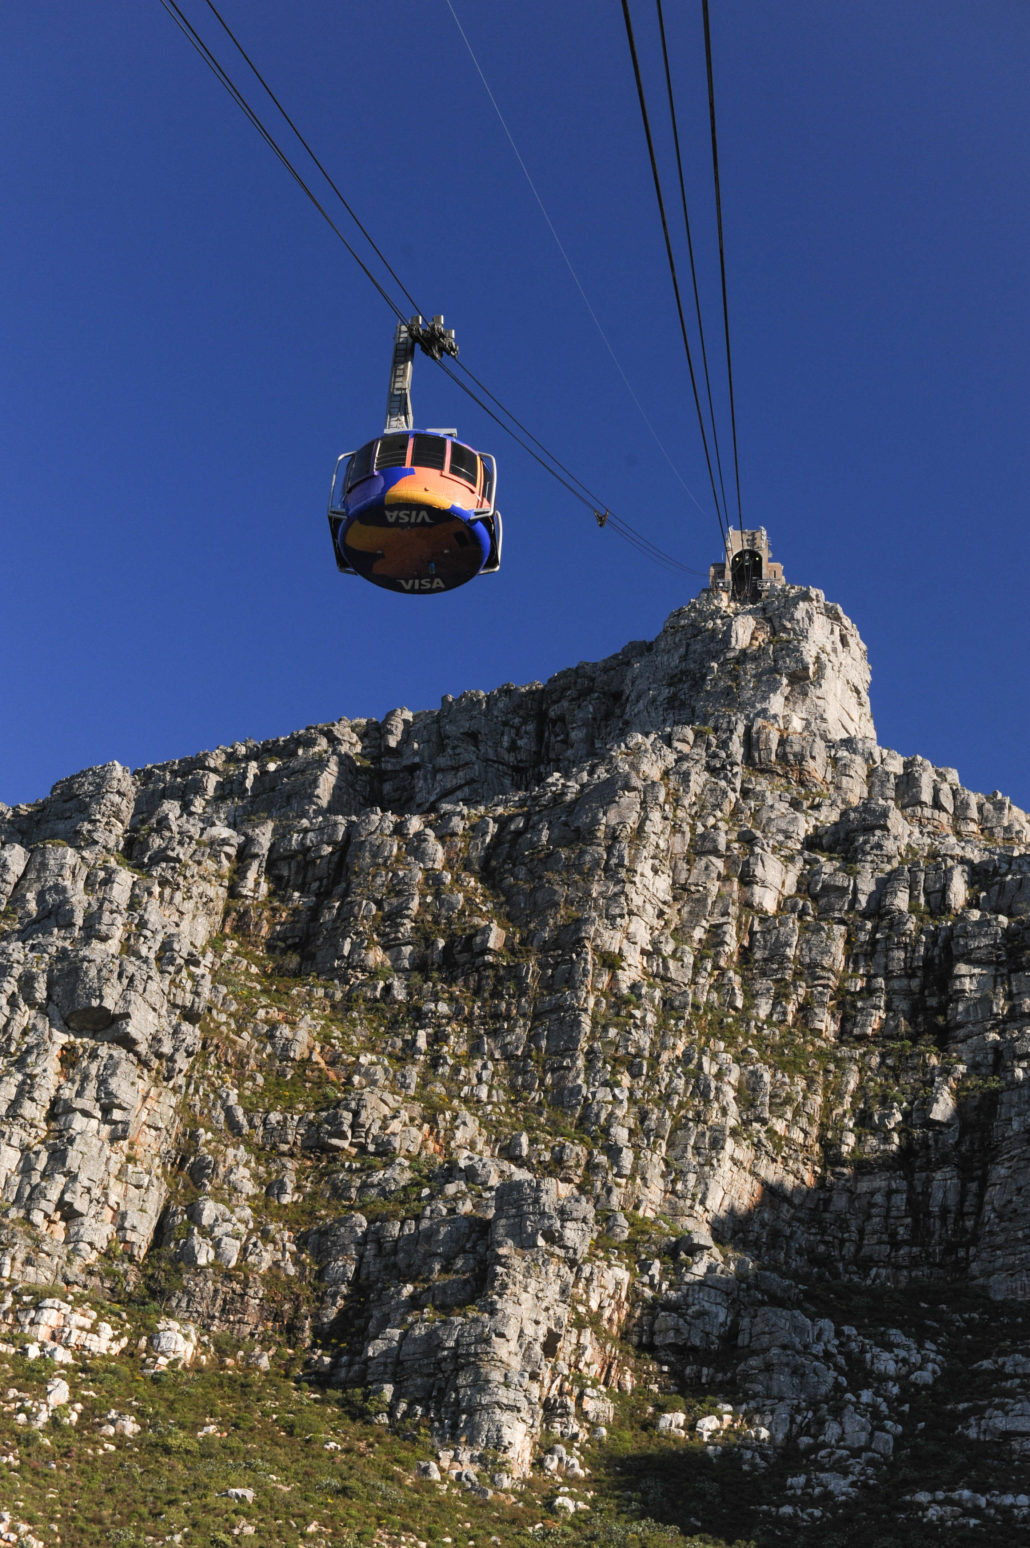 One can reach the top of Table Mountain at 3,500 feet in less than five minutes in the new rotating cable cars